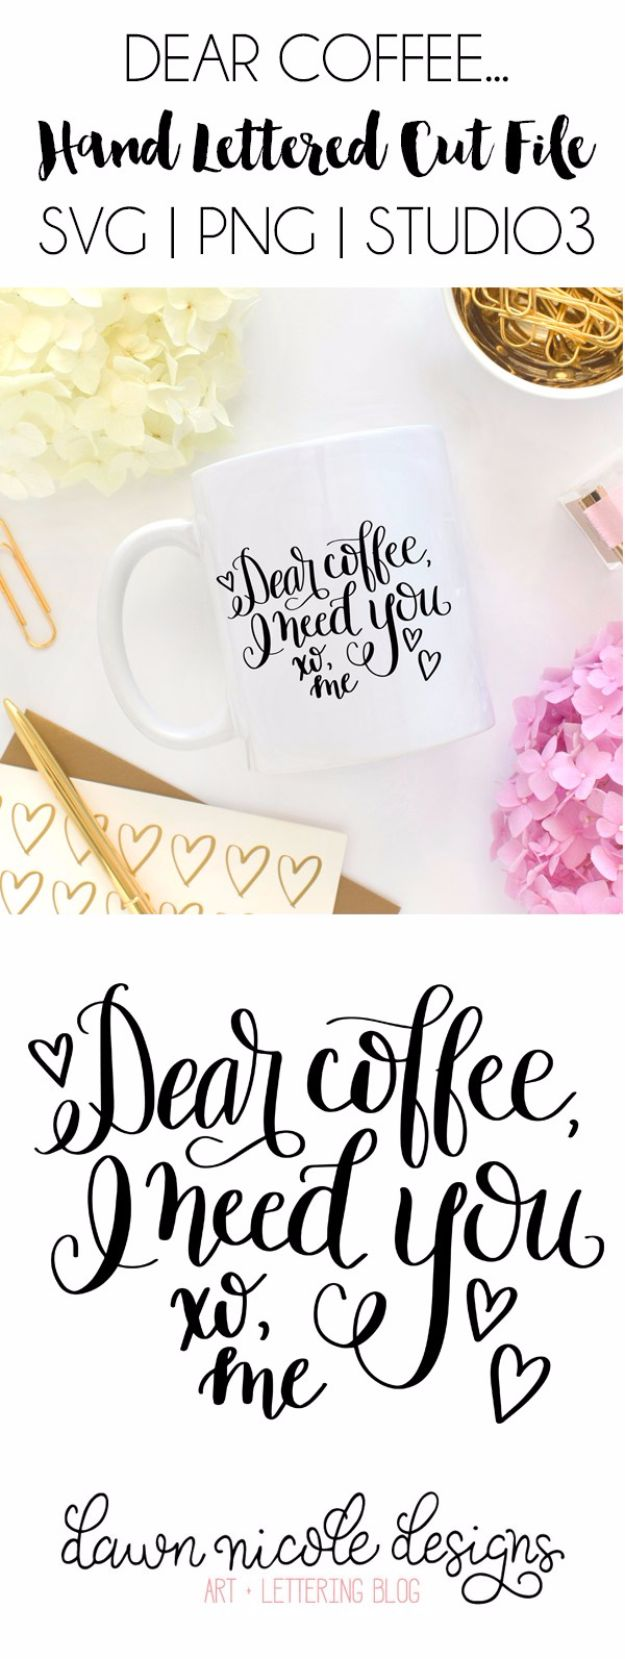 DIY Coffee Mugs - Dear Coffee Hand Lettered Free SVG Cut File - Easy Coffee Mug Ideas for Homemade Gifts and Crafts - Decorate Your Coffee Cups and Tumblers With These Cool Art Ideas - Glitter, Paint, Sharpie Craft, Nail Polish Water Marble and Teen Projects http://diyjoy.com/diy-coffee-mugs